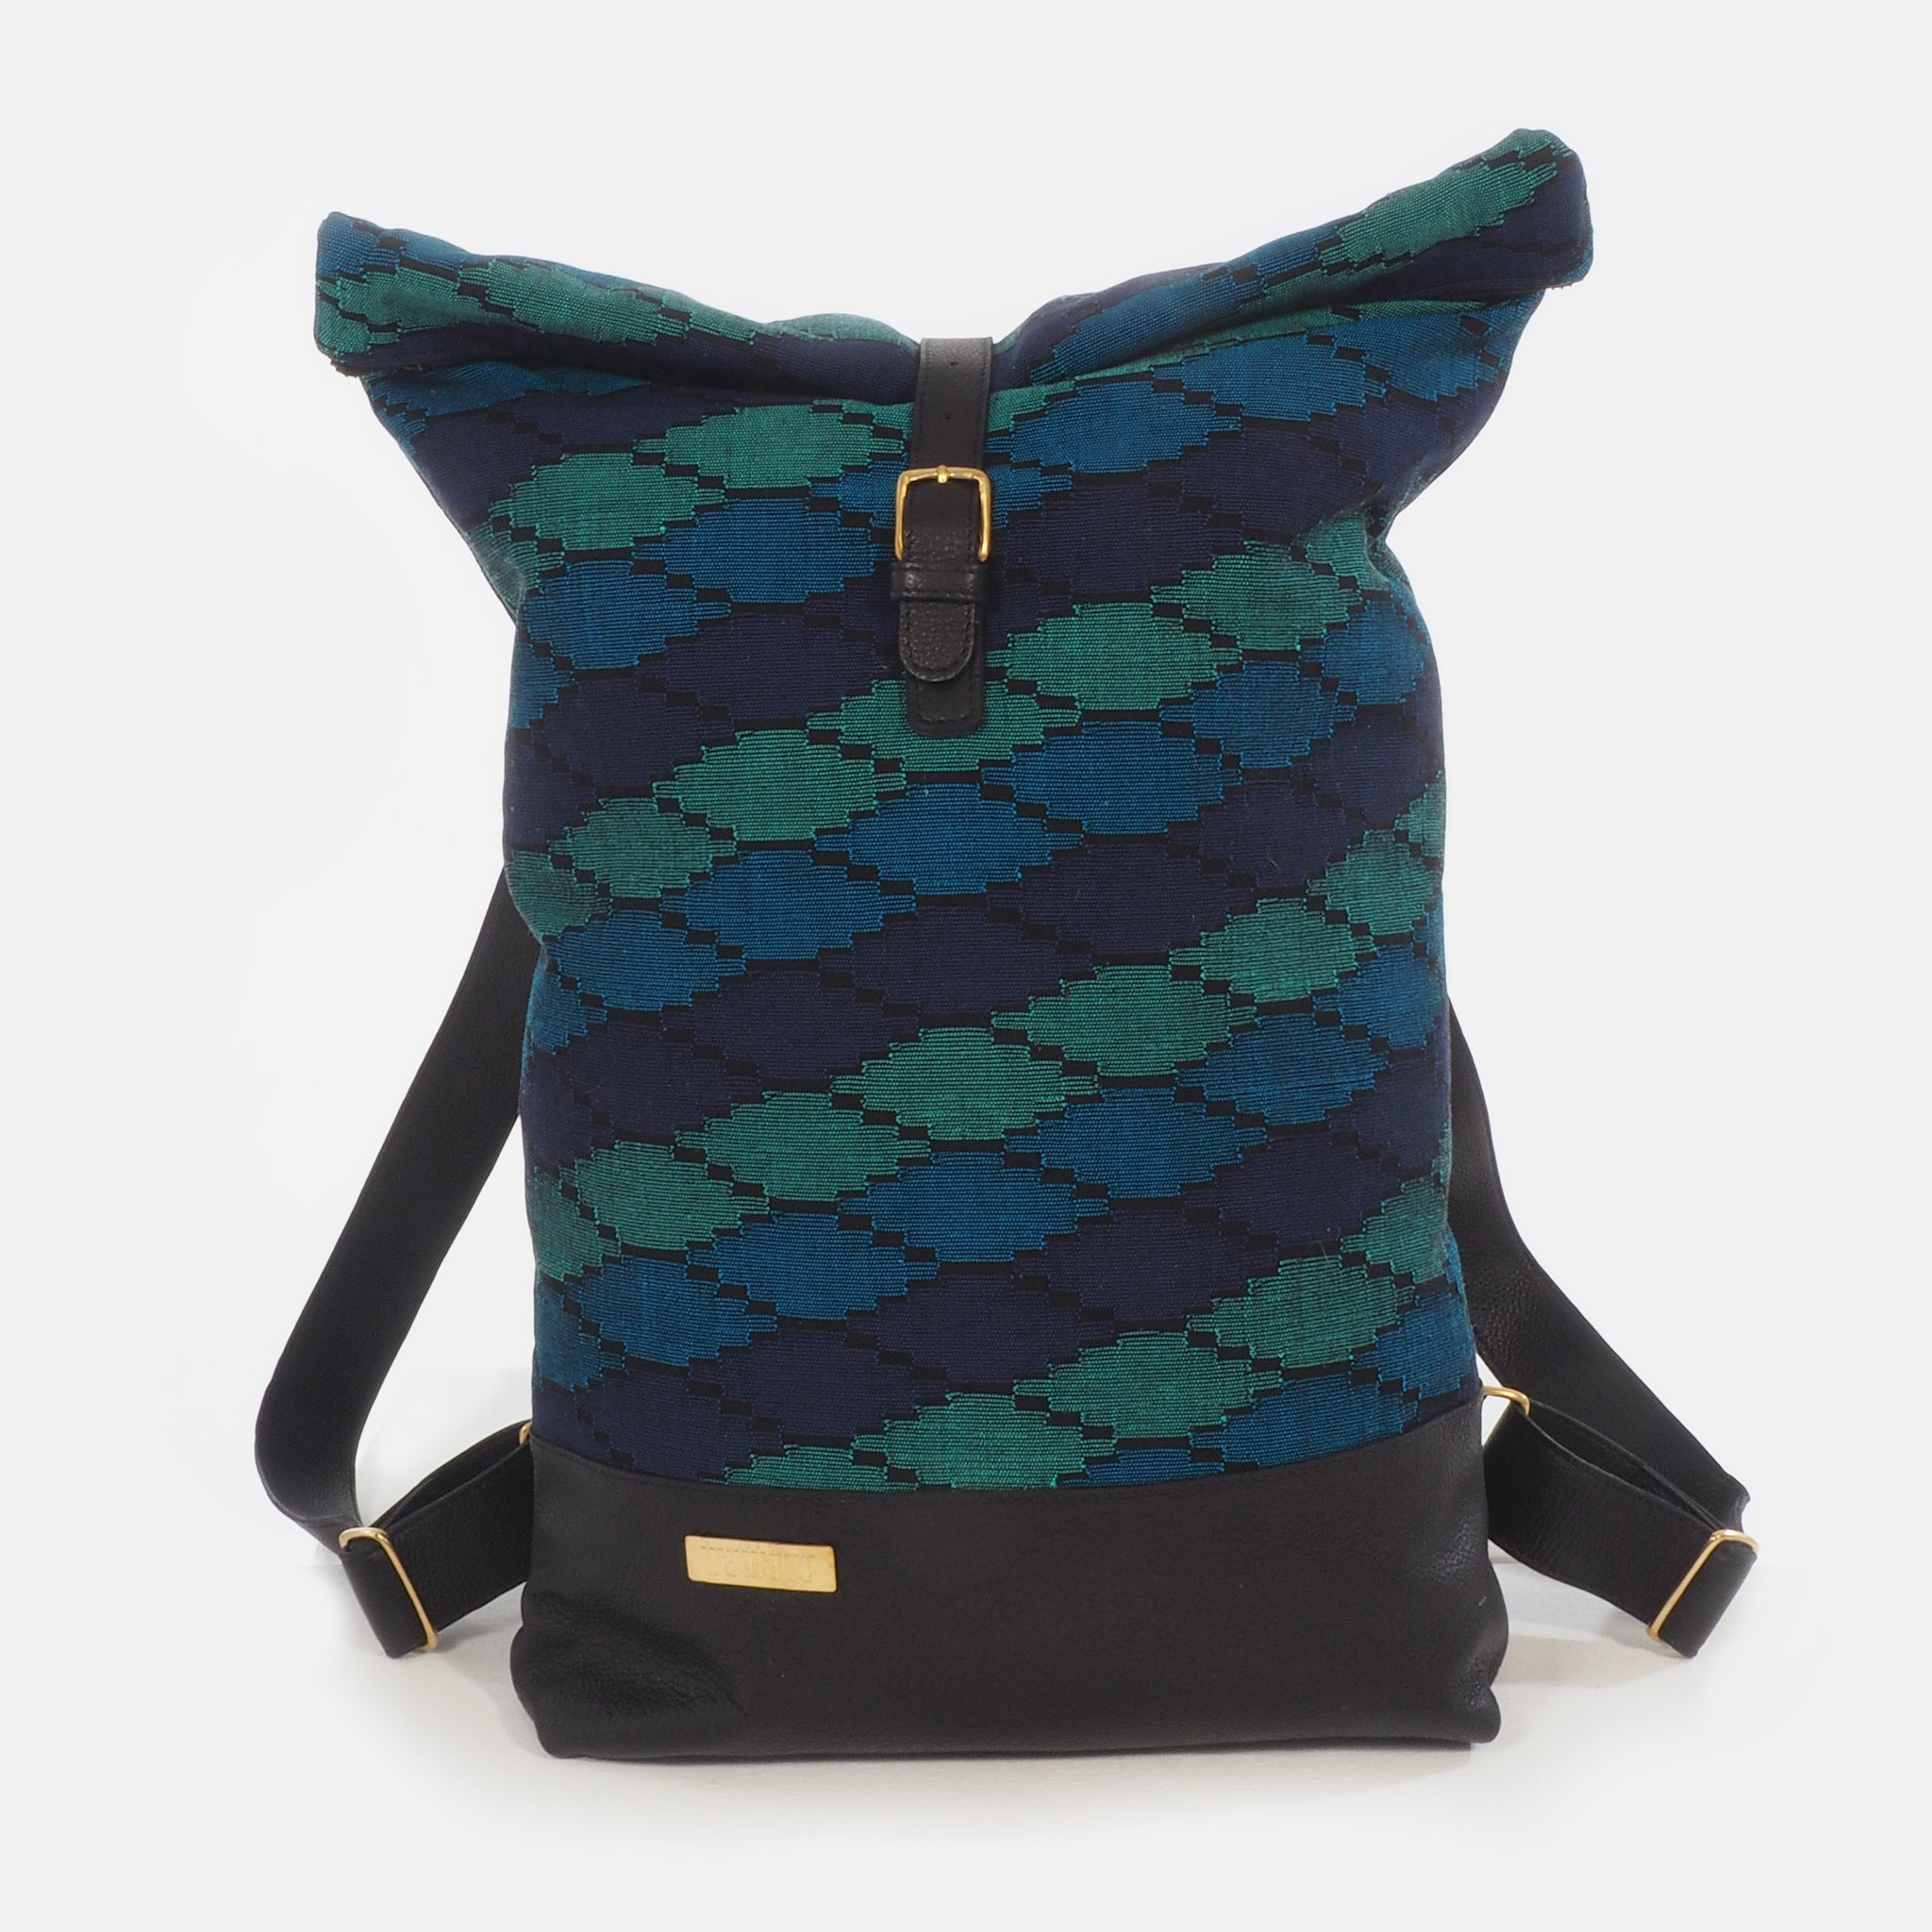 Front view of Battiayo ,Deep Blue Sea' backpack with handwoven traditional dhaka fabric from Nepal and leather. The handwoven fabric of the backpack has three different shades of blue and a bit of black. The dhaka fabric has a geometric pattern and is handwoven by amazing women. The leather is black. The straps and bottom are made from leather. The brass buckles and brass label are also made in Nepal.